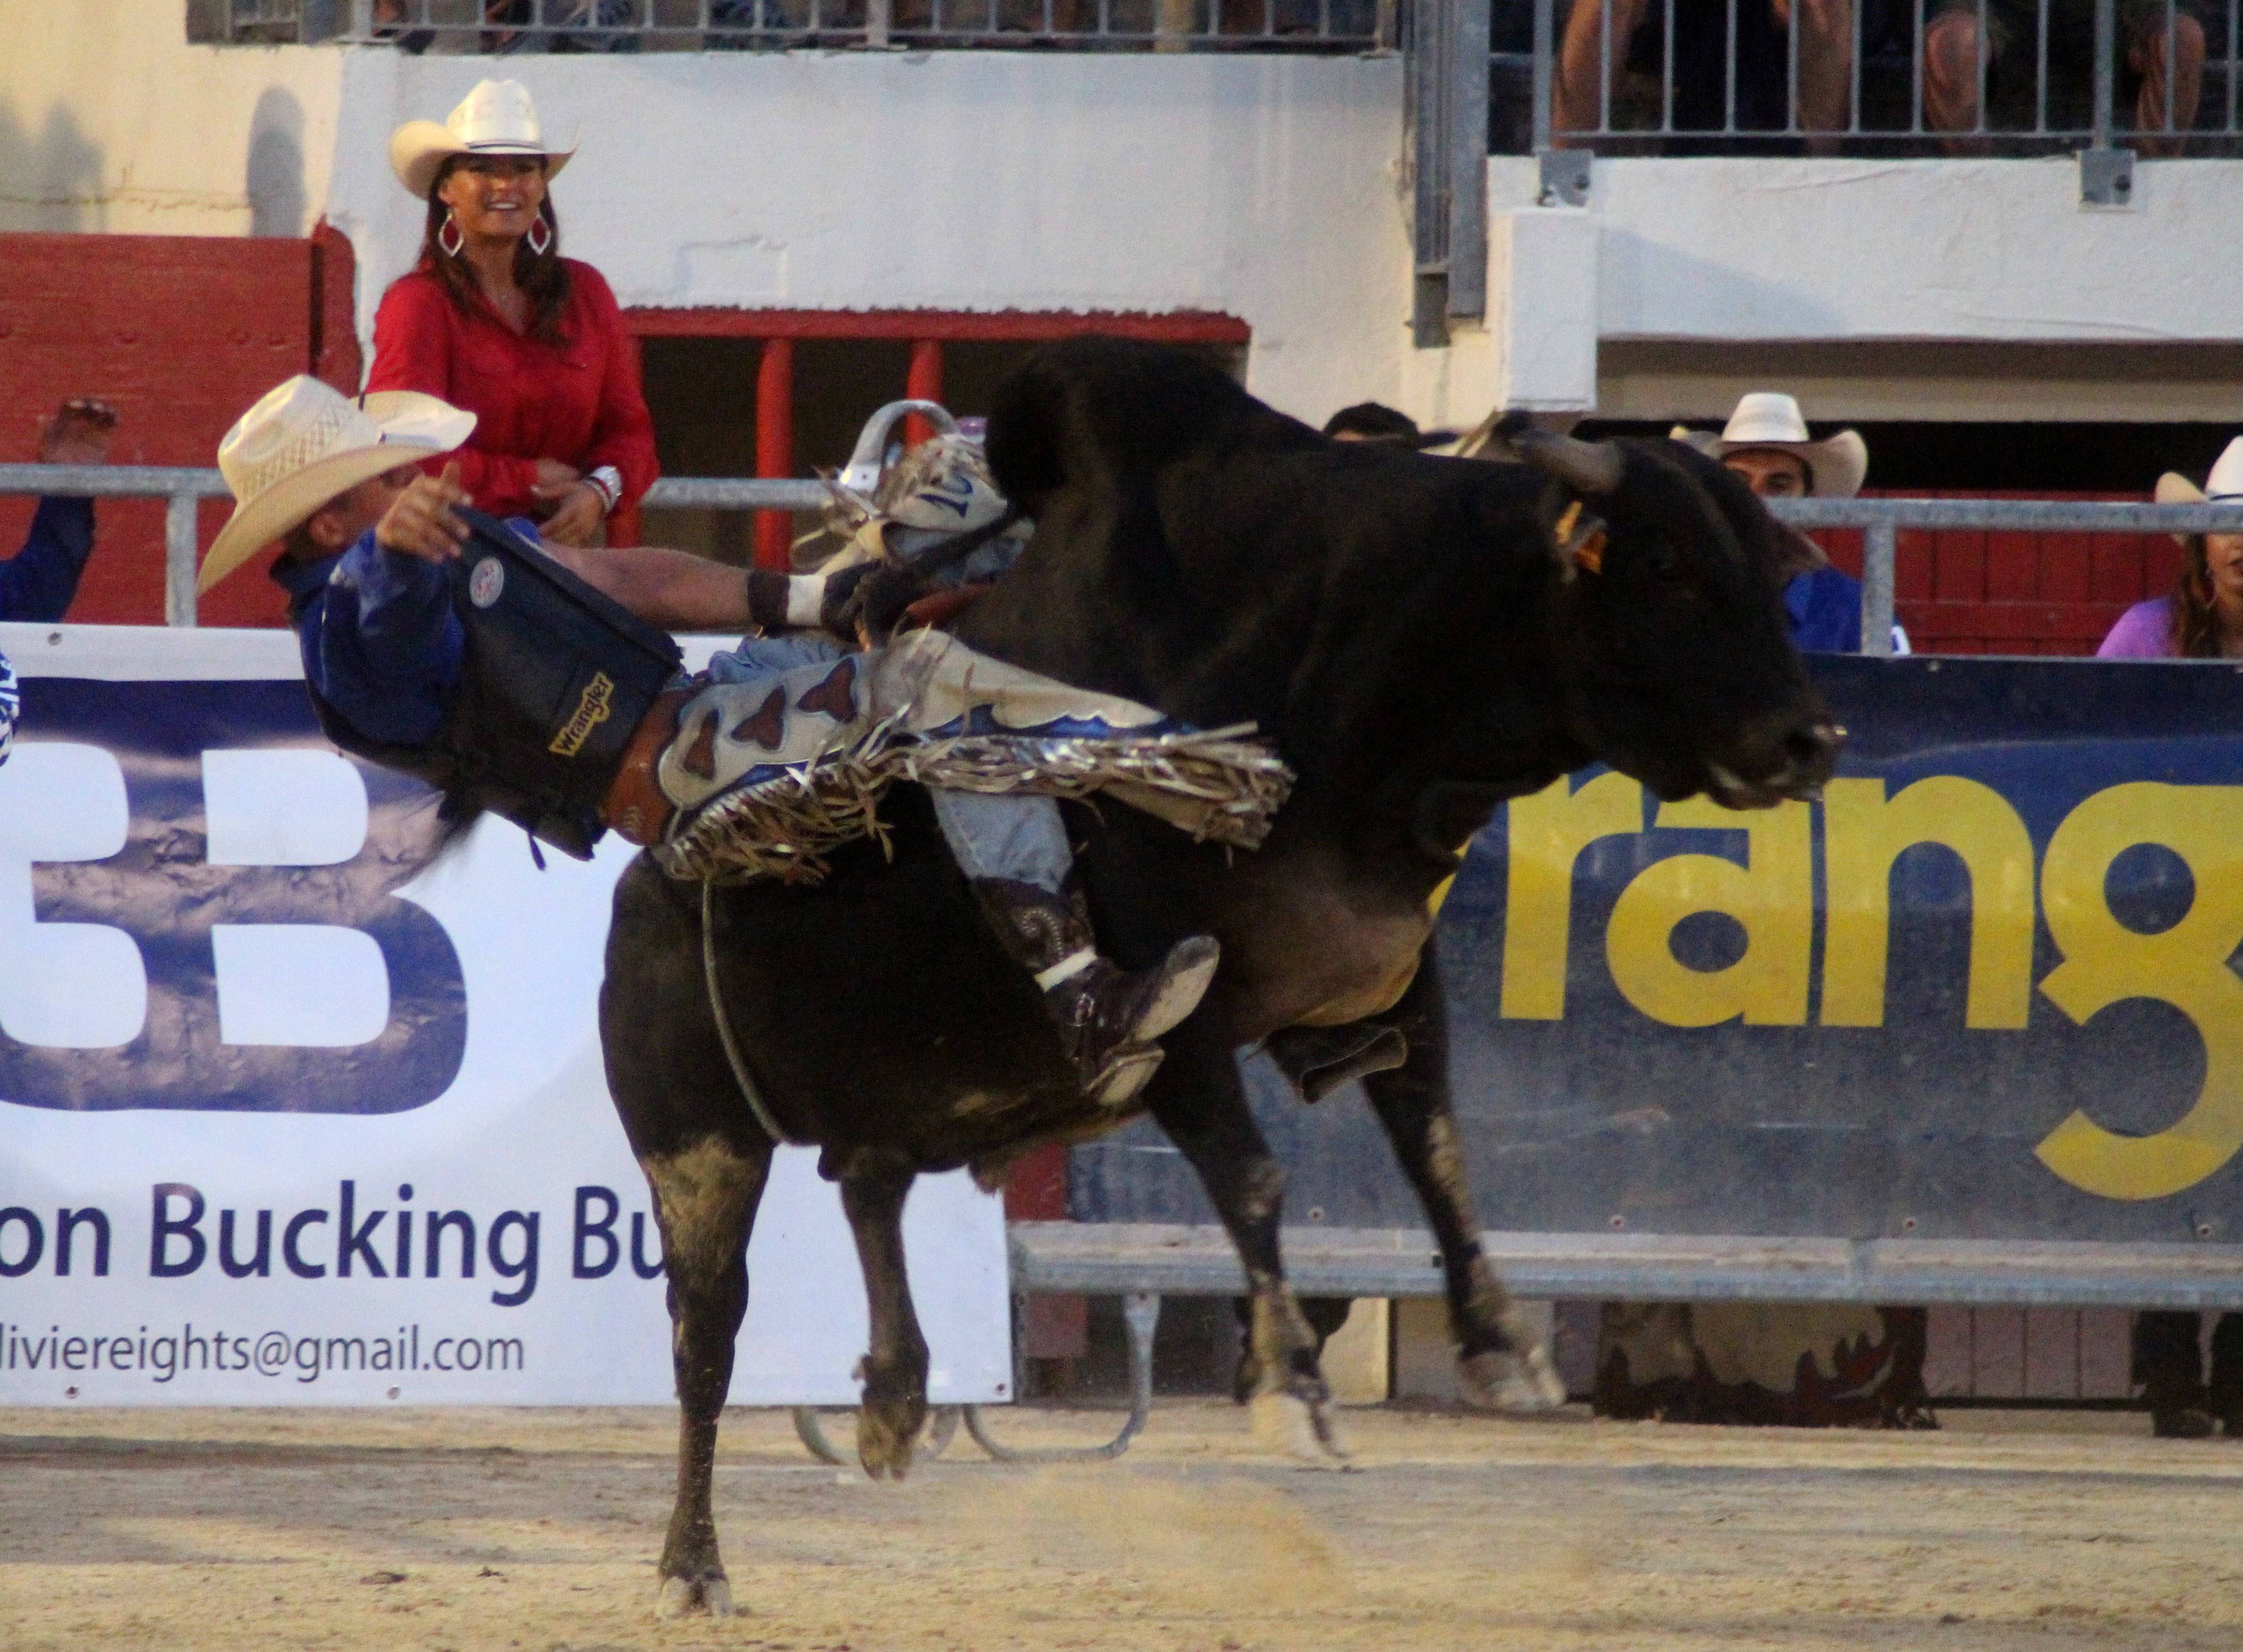 Olivier Bourillon and The Rodeo Cowboys of Provence